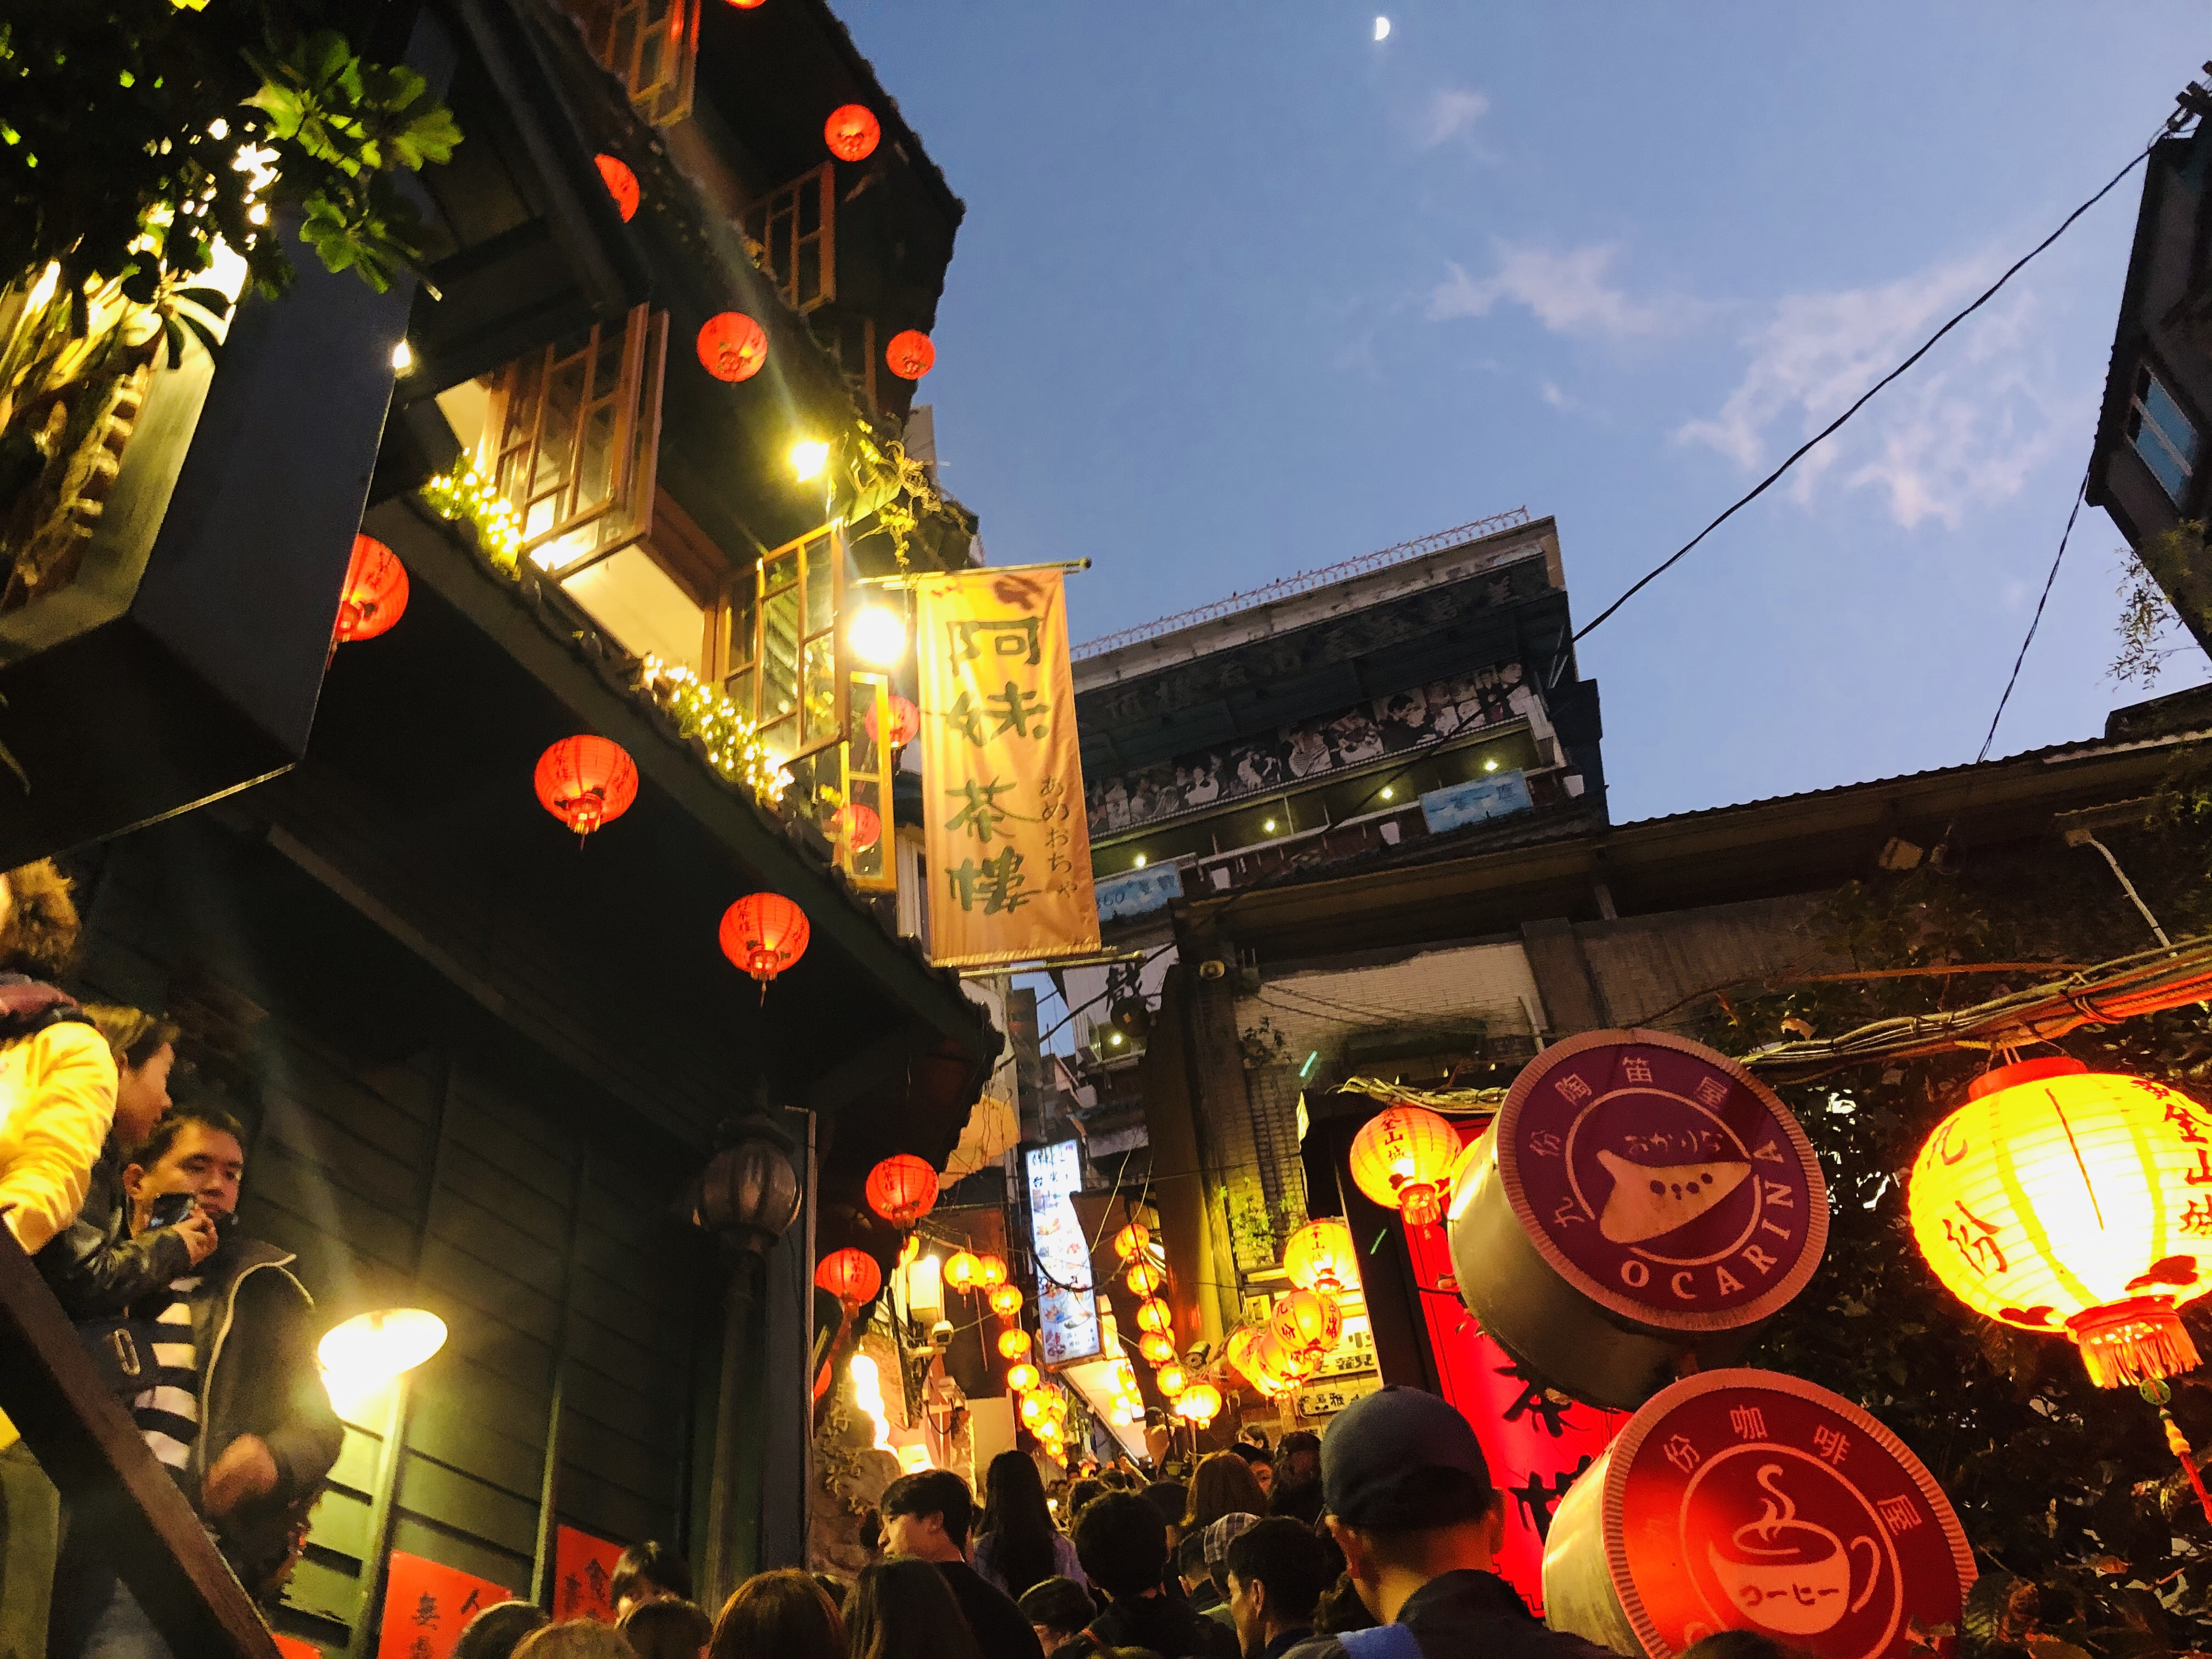 Making A Wish And Getting Spirited Away Exploring Lantern Towns In Taiwan Resurface To Reality